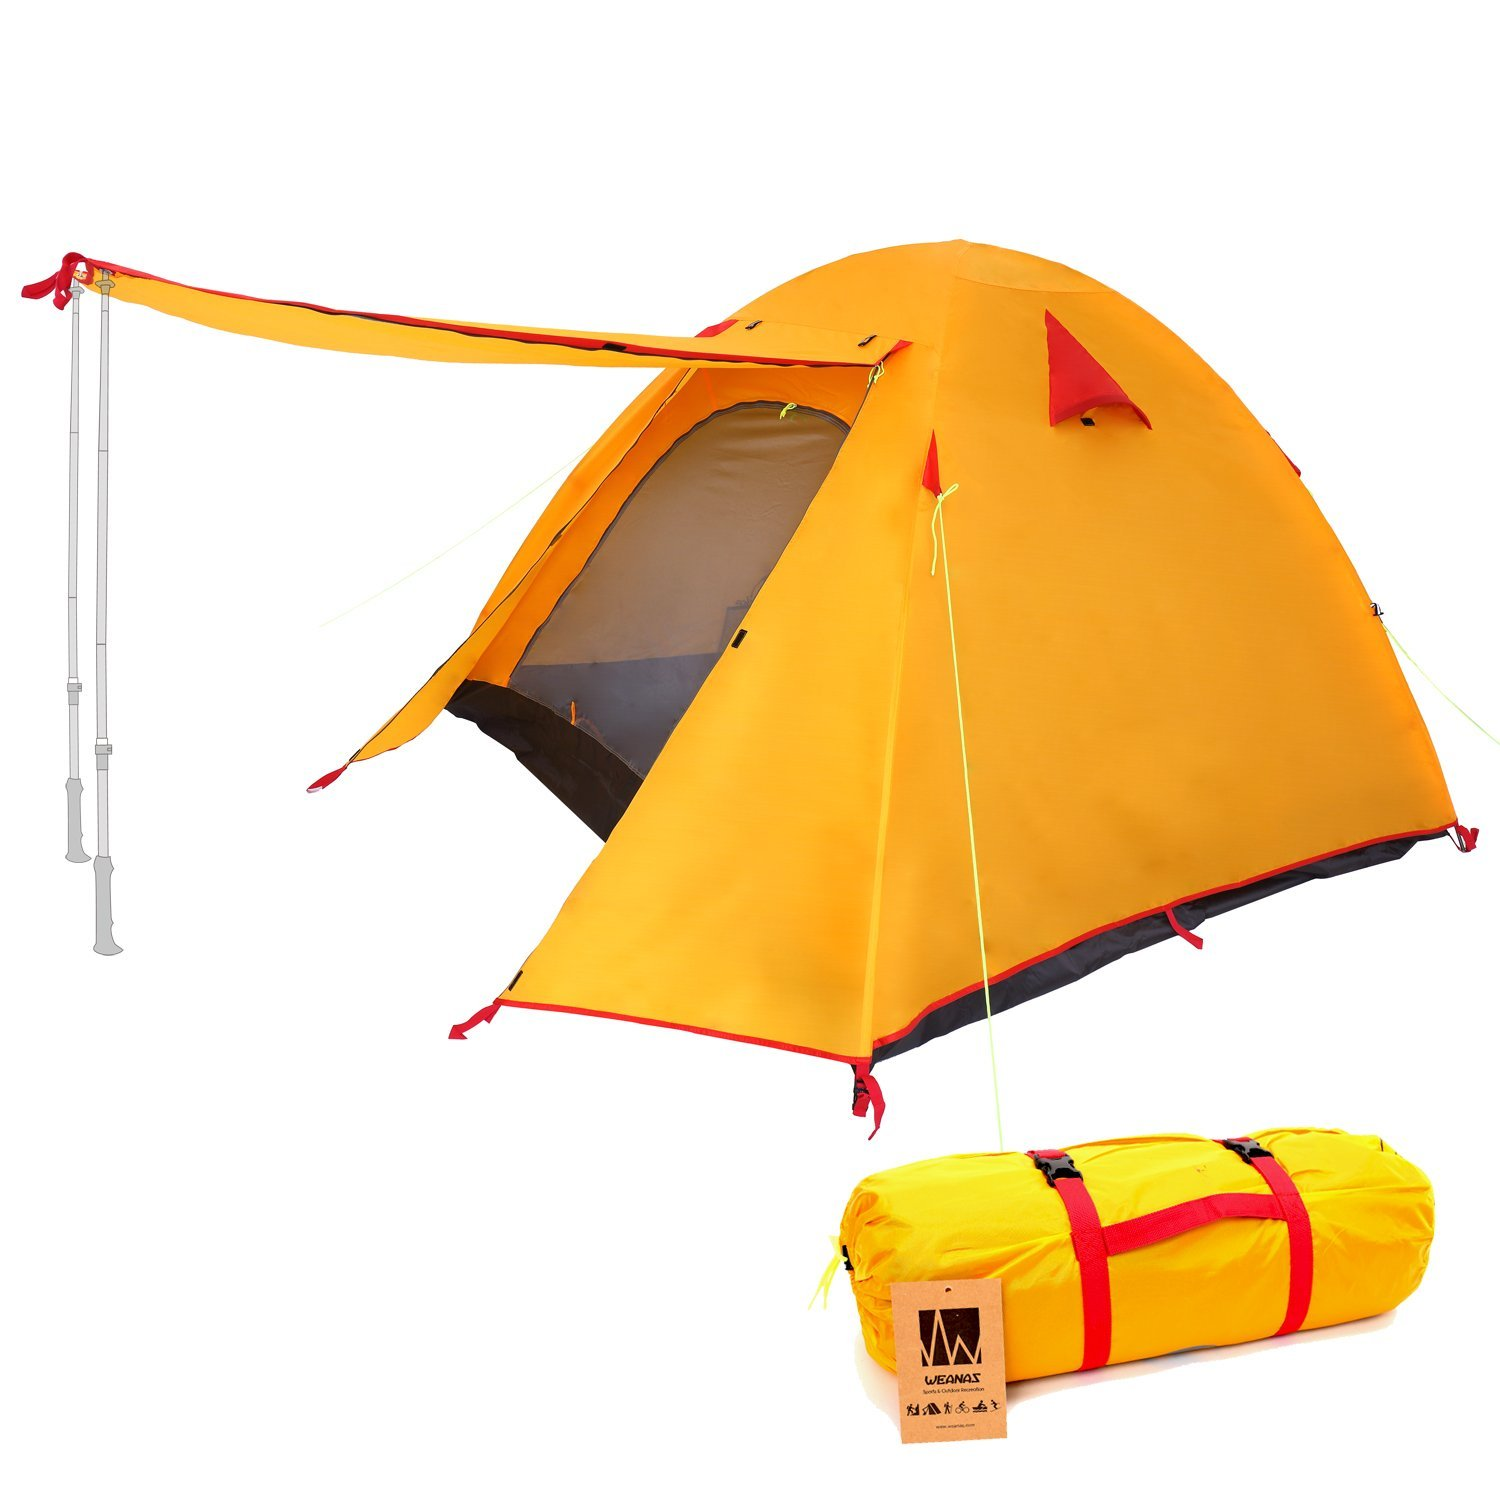 weanas, tent, camping, road trip, cross country